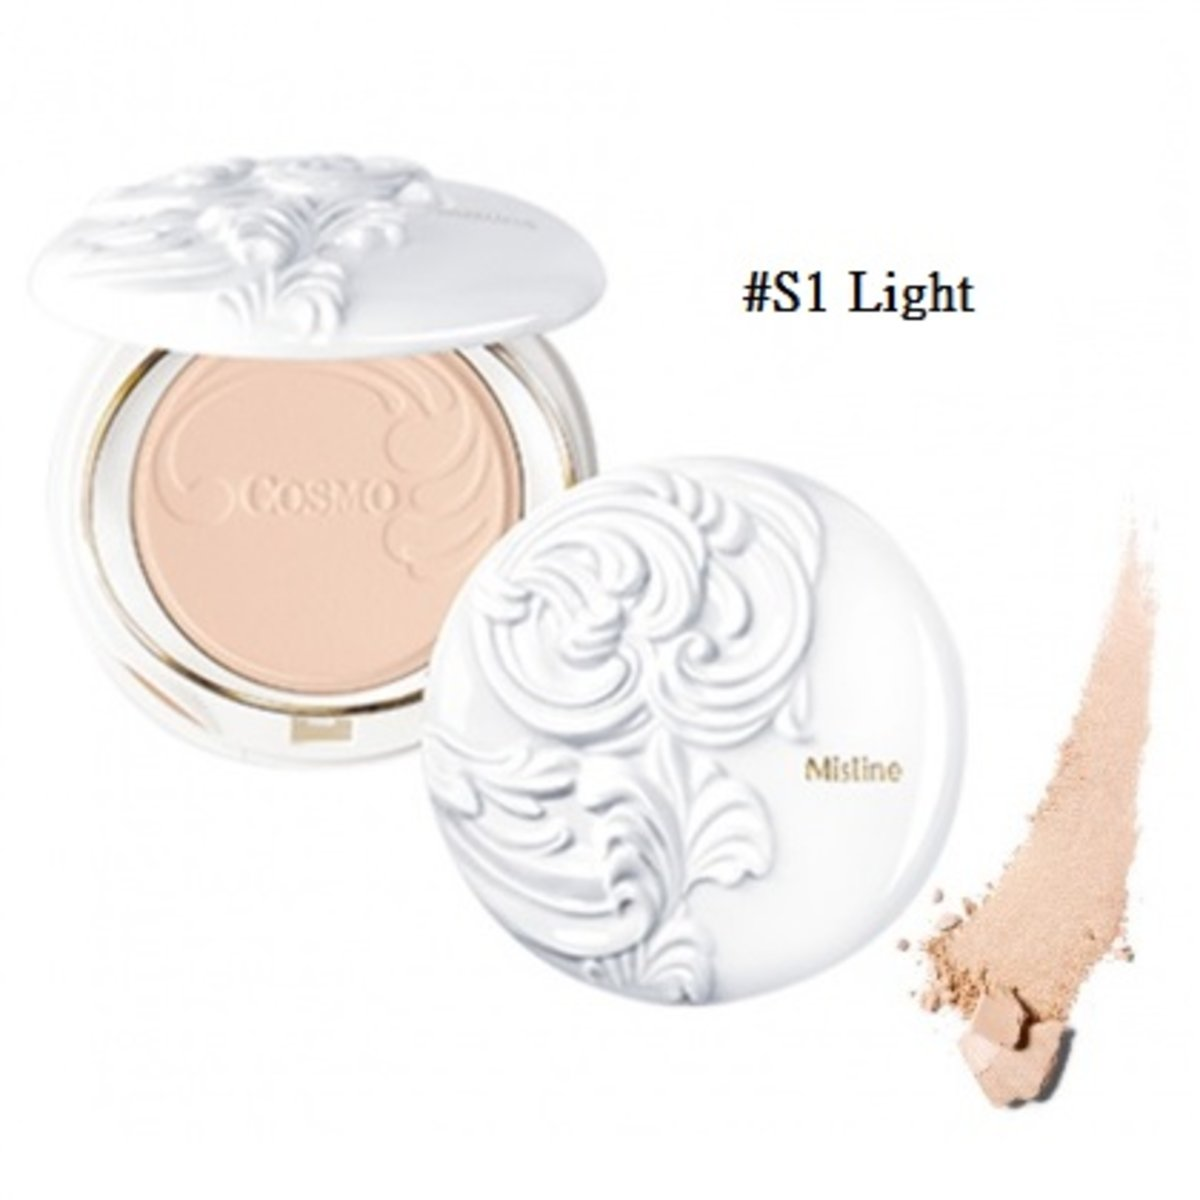 Cosmo Smooth And Clear Super Powder #S1 Light 10g (8855629008010)